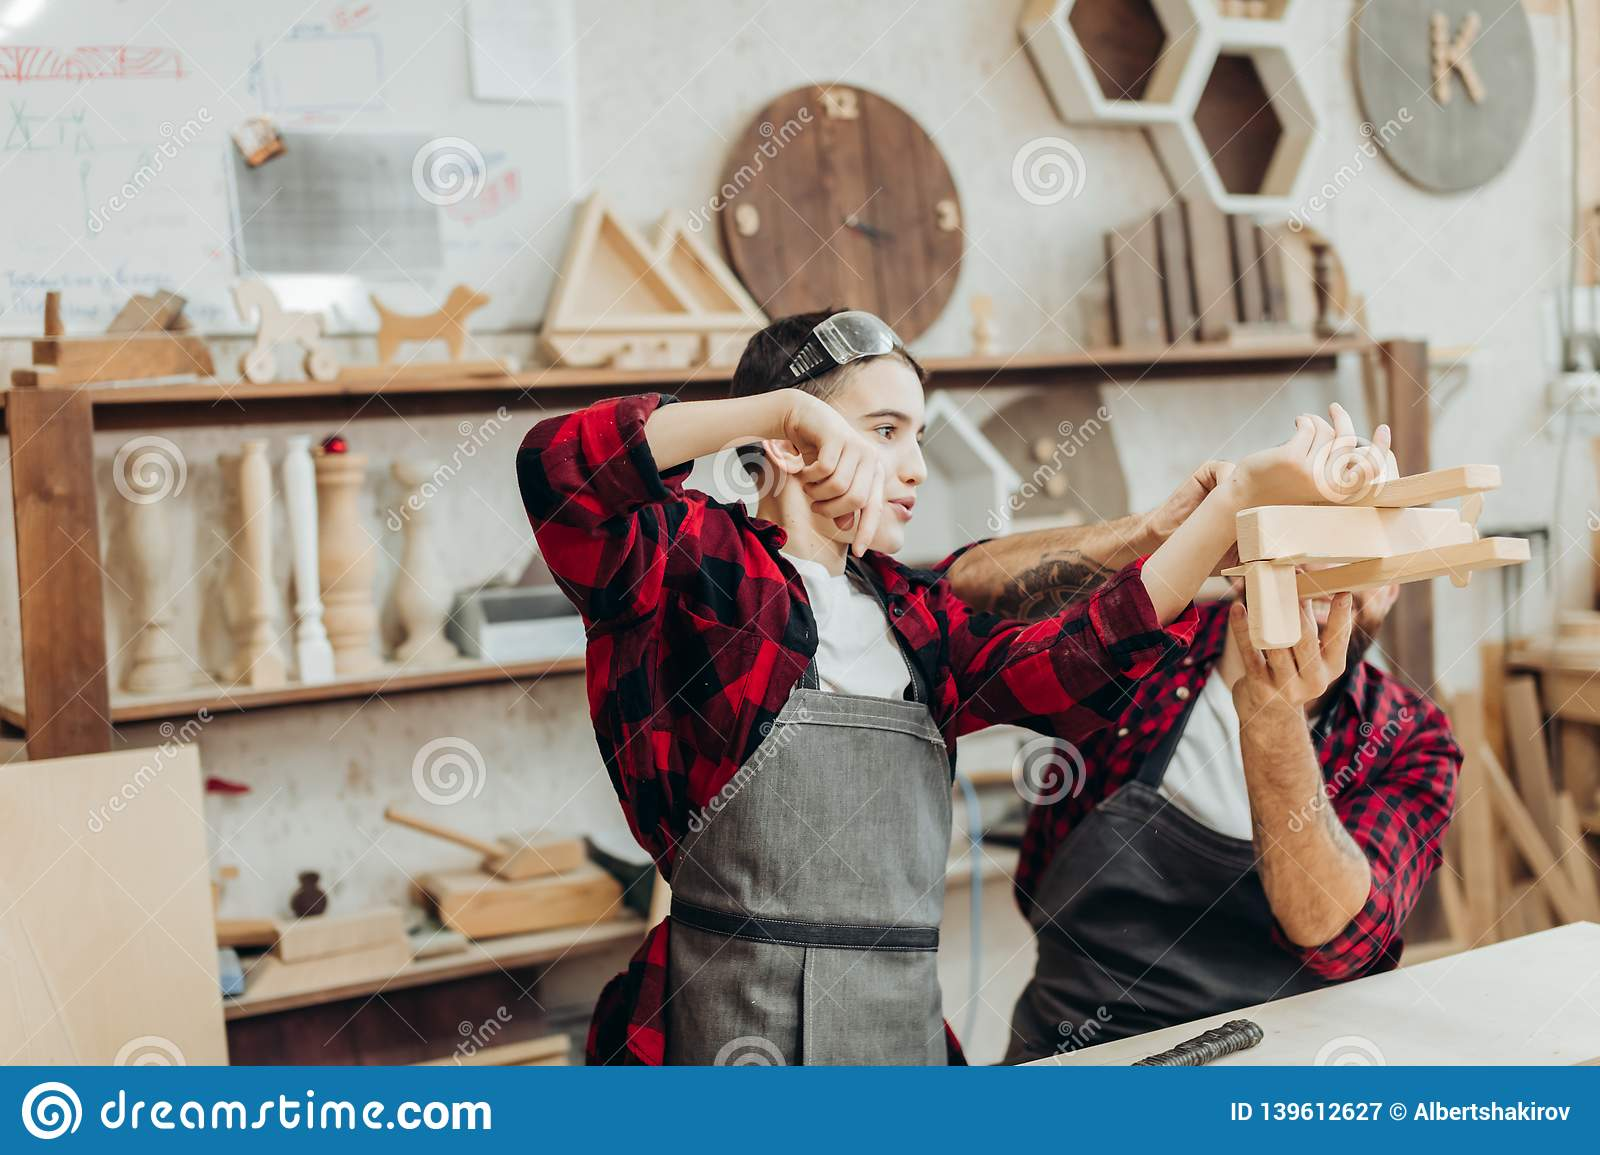 Woodwork Classes For Children And Creativity Concept Stock Image